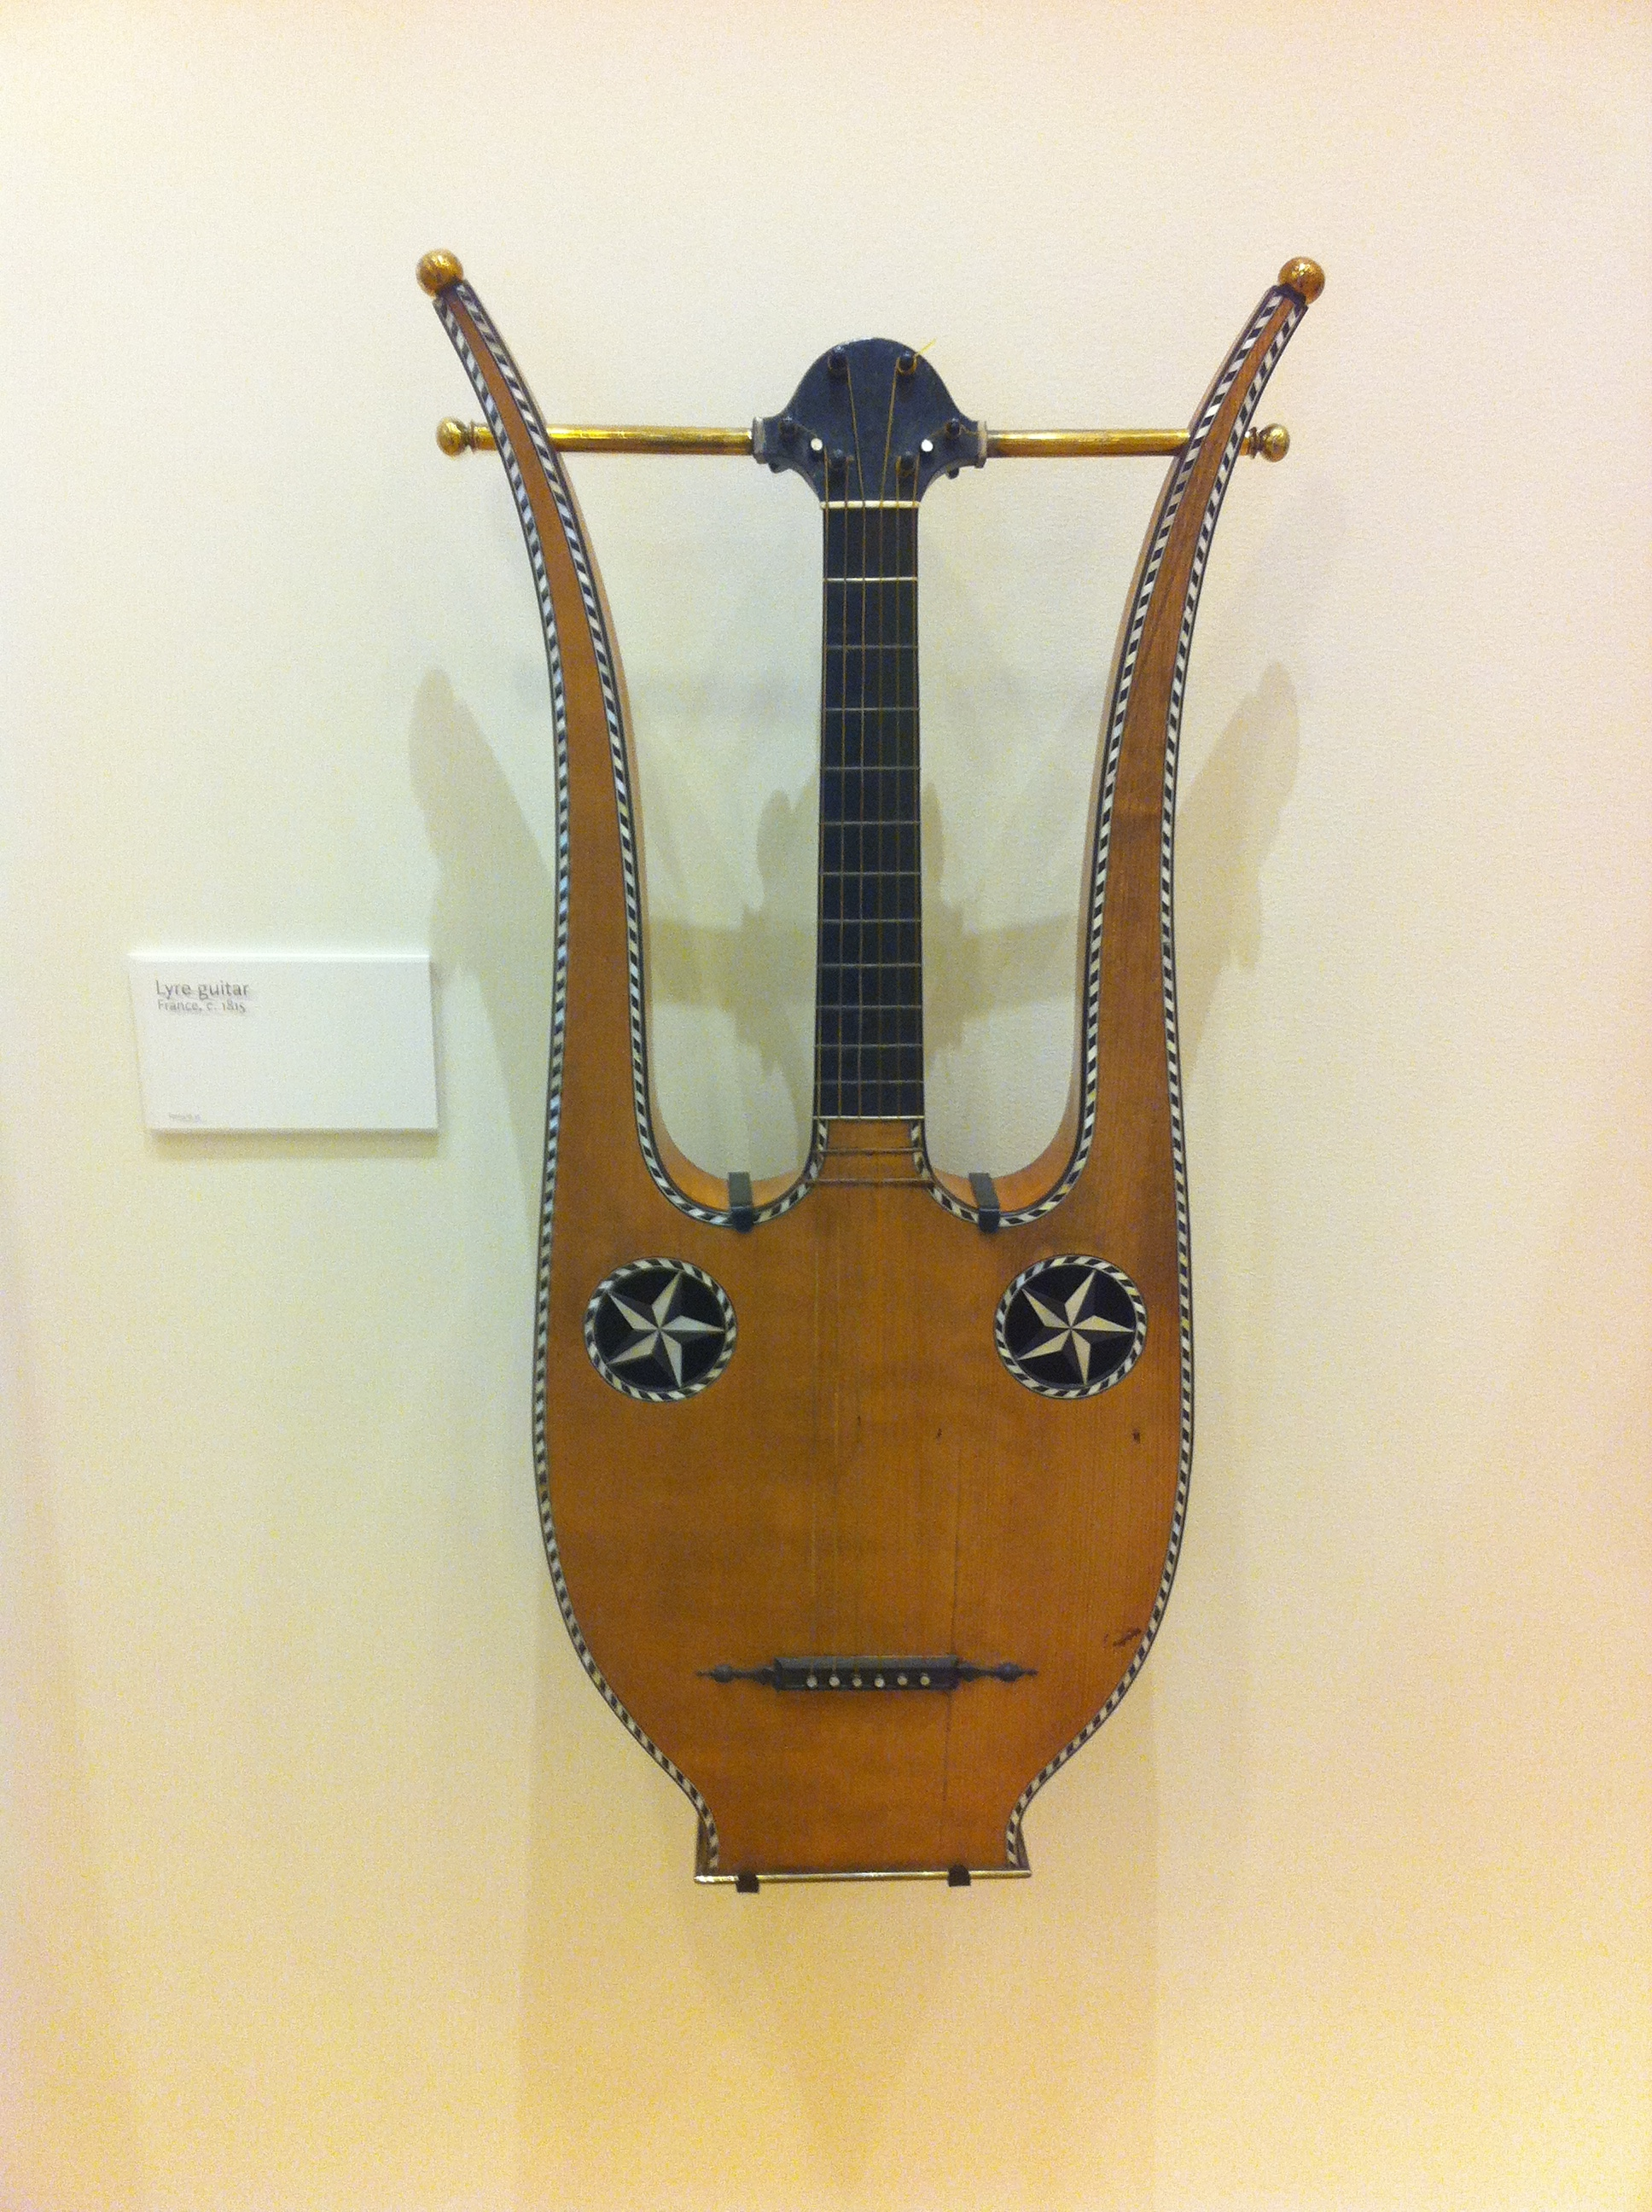 Lyre guitar, France, c. 1815. I loved the mask, folk-art quality of this guitar